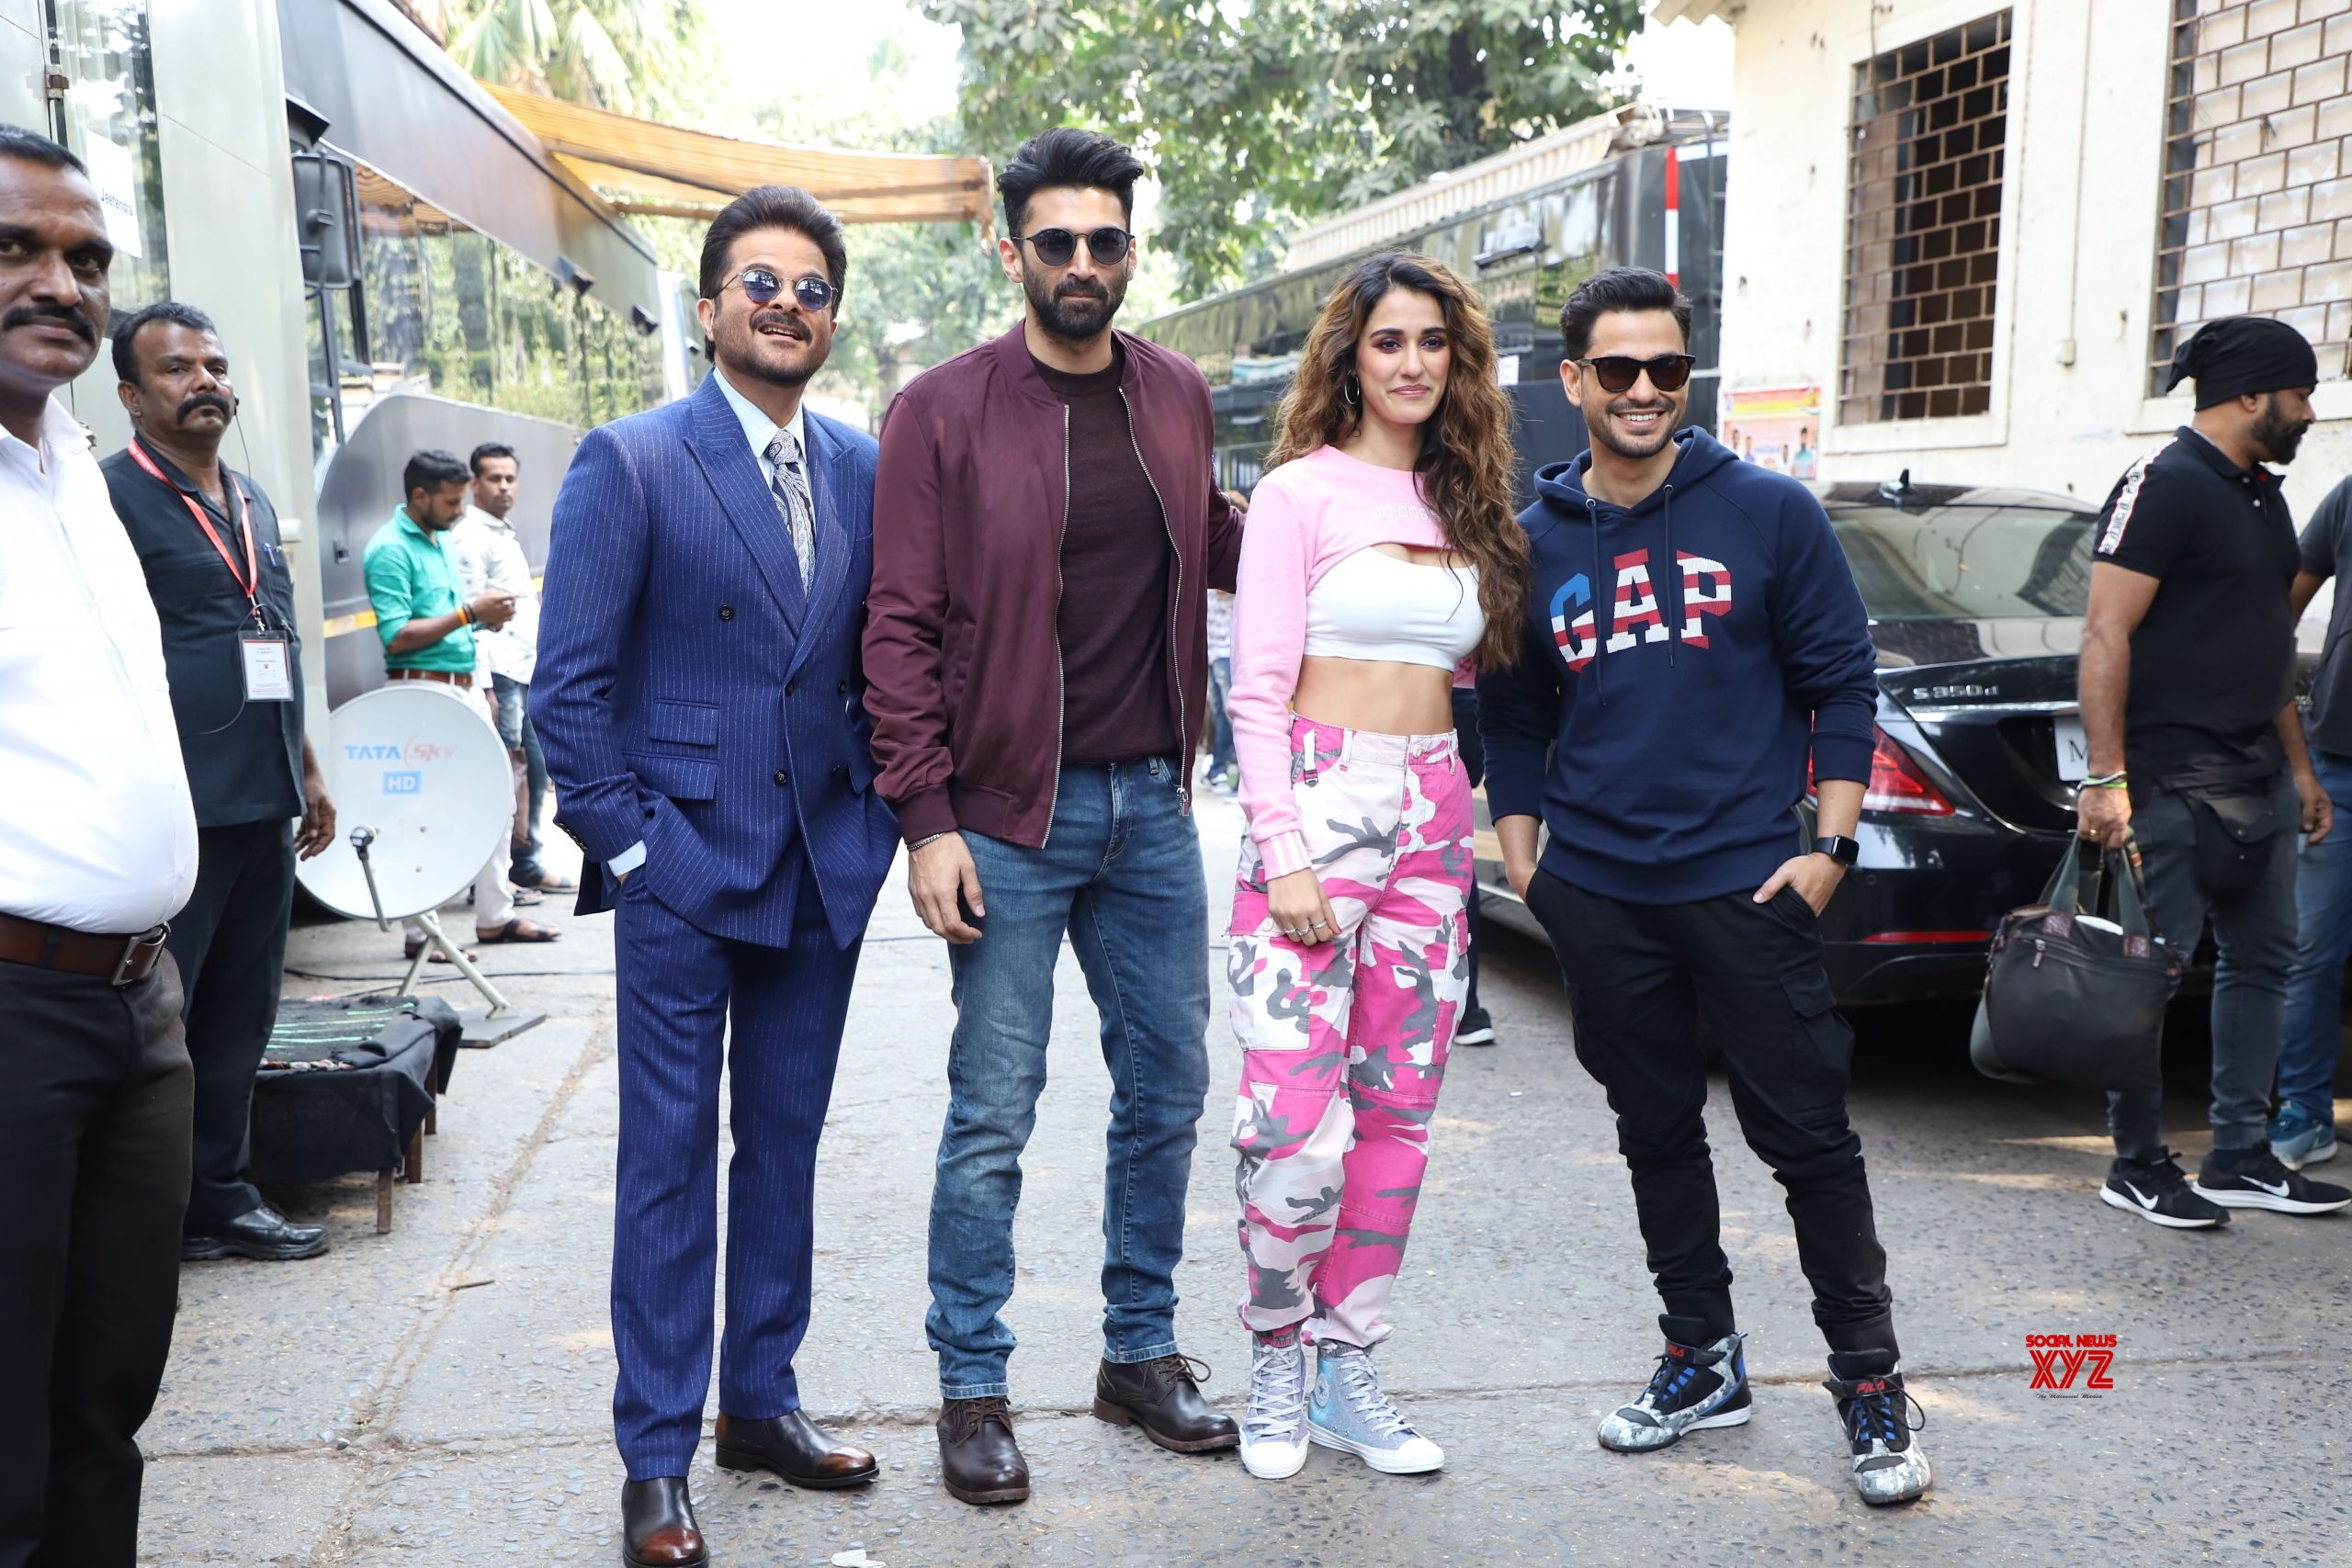 Disha Patanig Aditya Roy Kapoor Anil Kapoor And Kunal Khemu On The Sets Of Dance Plus 5 For Malang Movie Promotions Hd Gallery Set 1 Social News Xyz